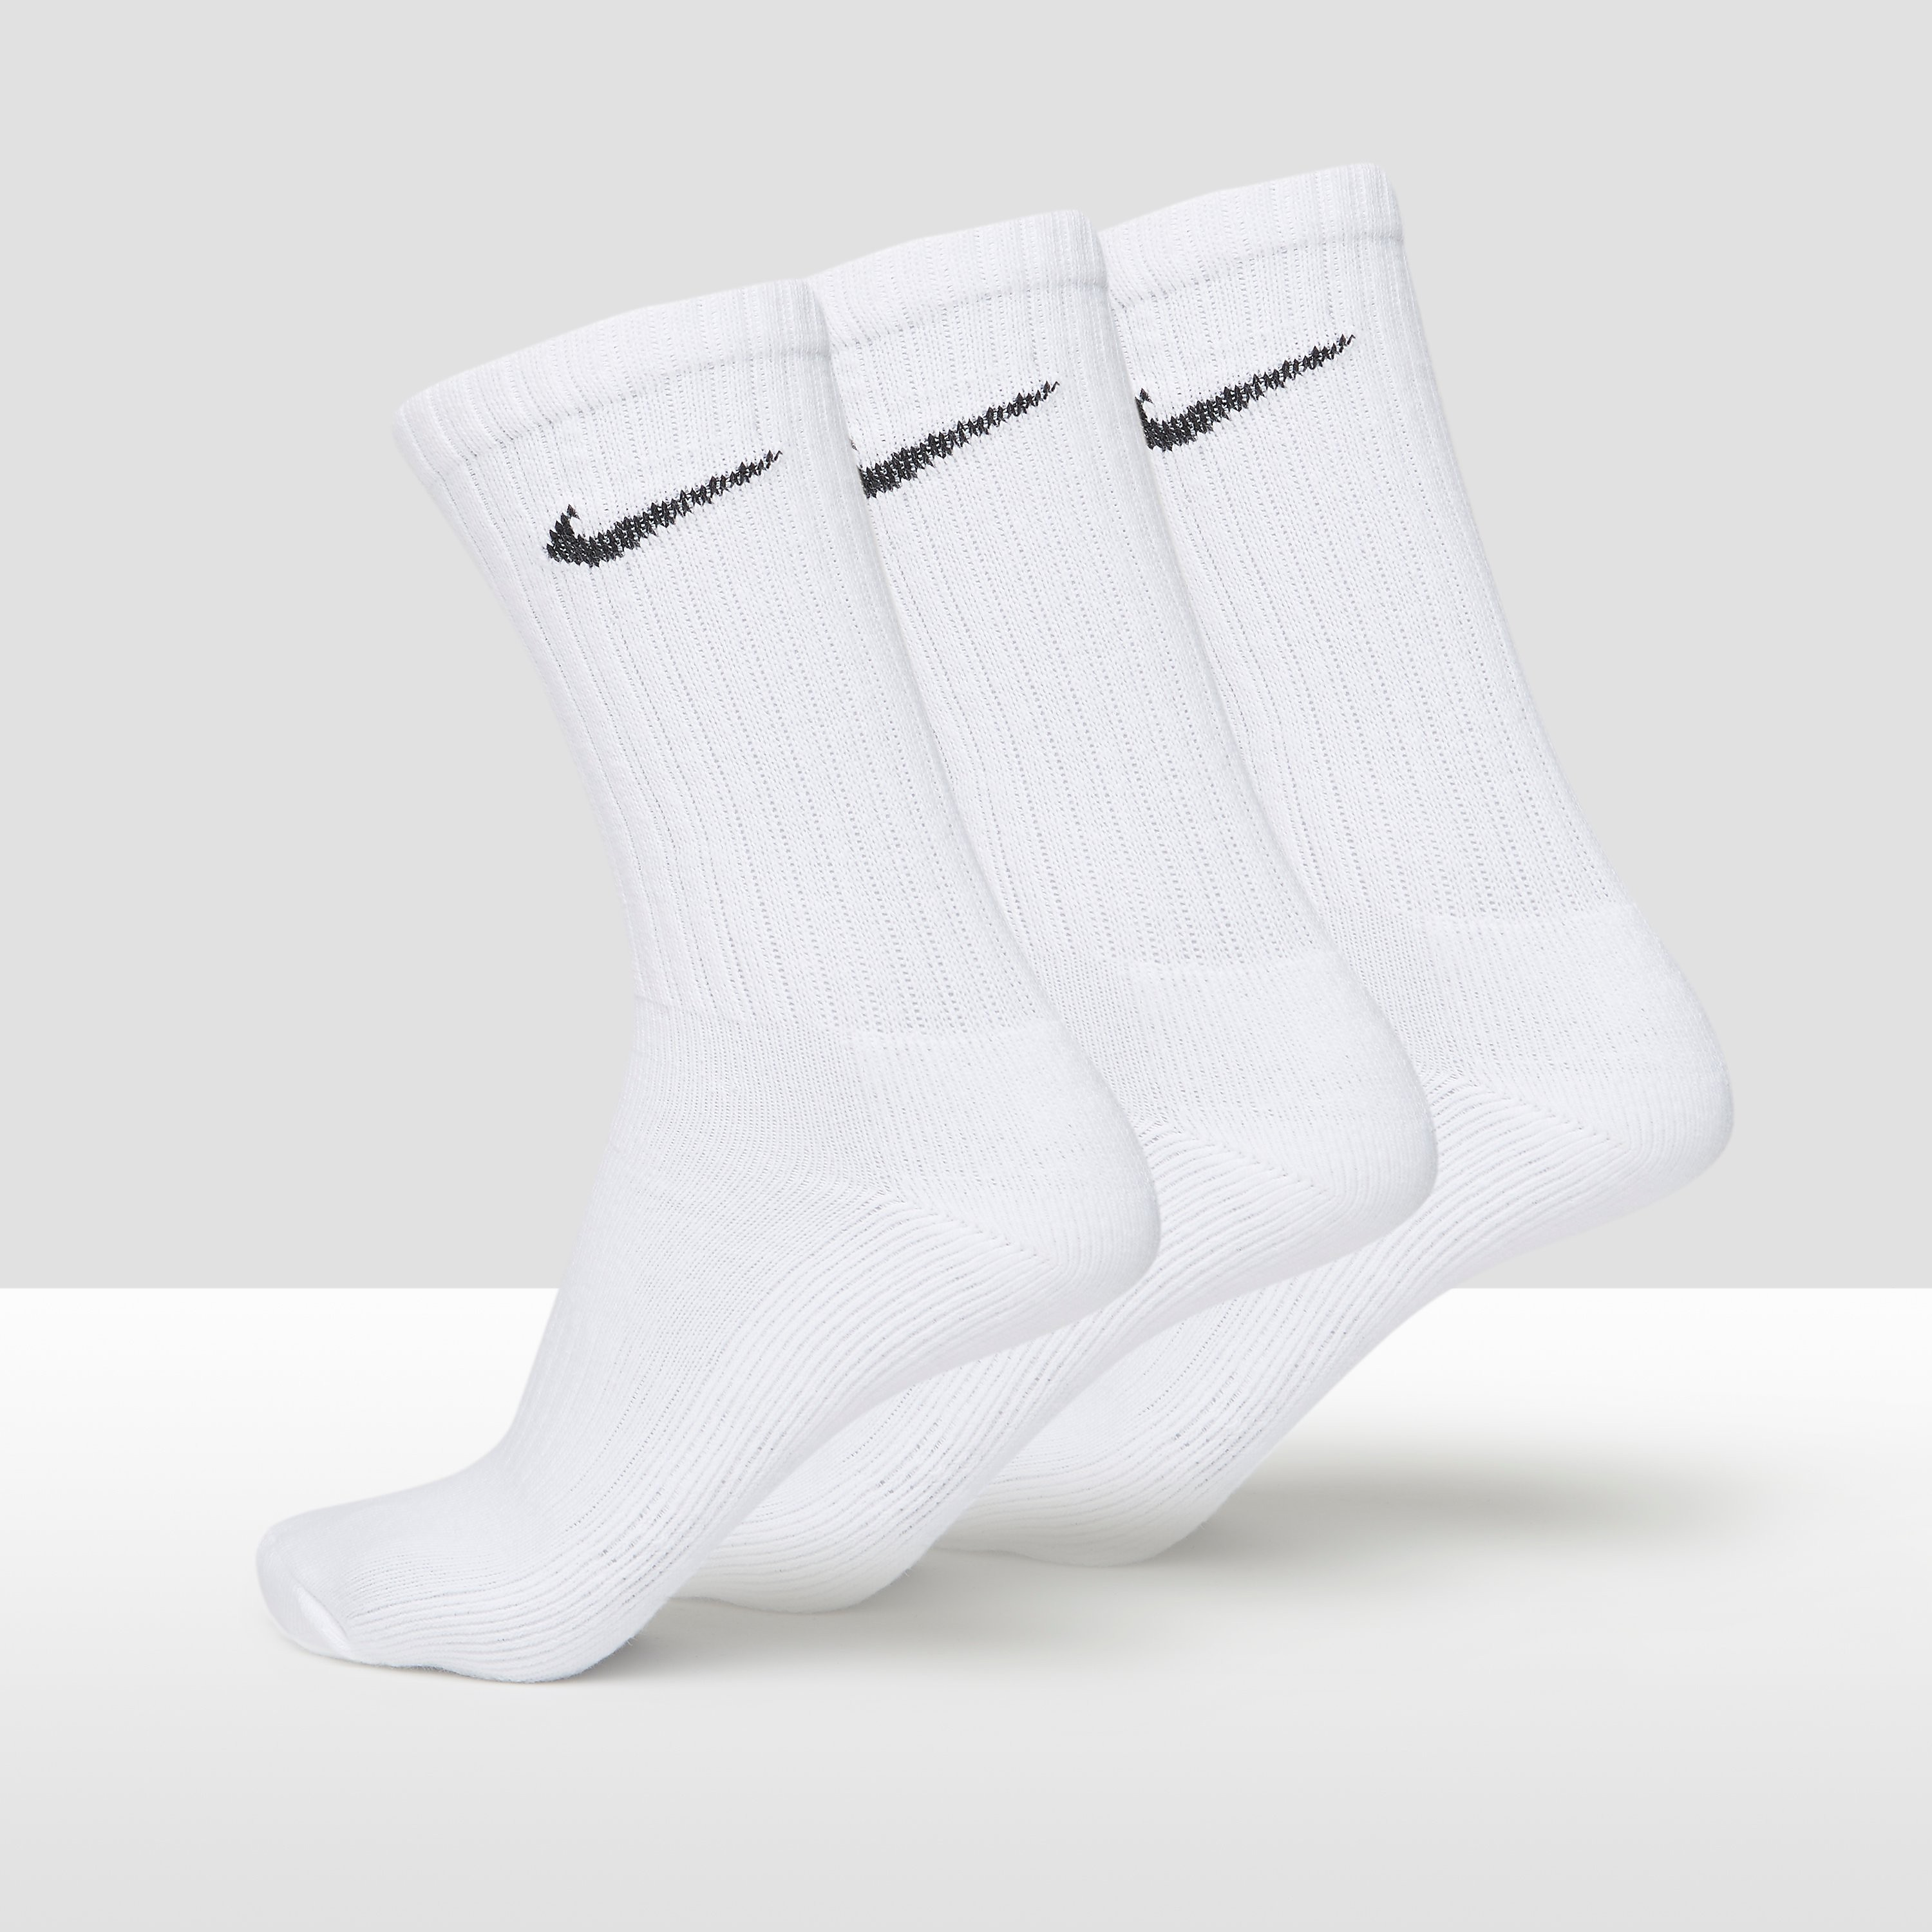 NIKE VALUE COTTON CREW SPORTSOKKEN 3-PACK HEREN